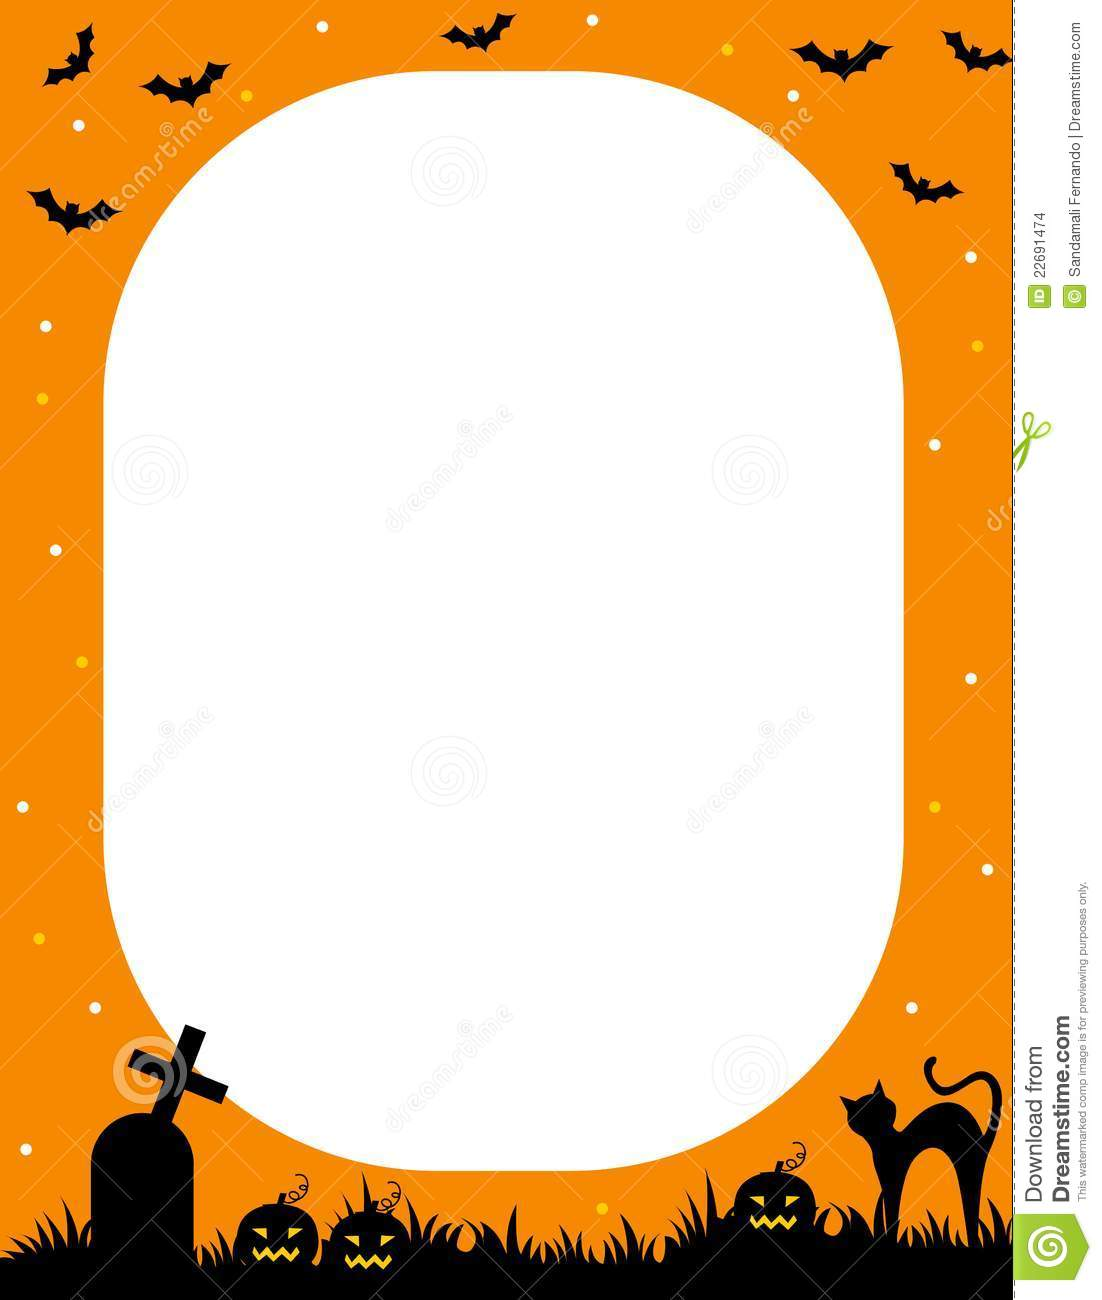 Fall Graveyard Cemetery Wallpaper Halloween Frame Stock Vector Image Of Design Autumn